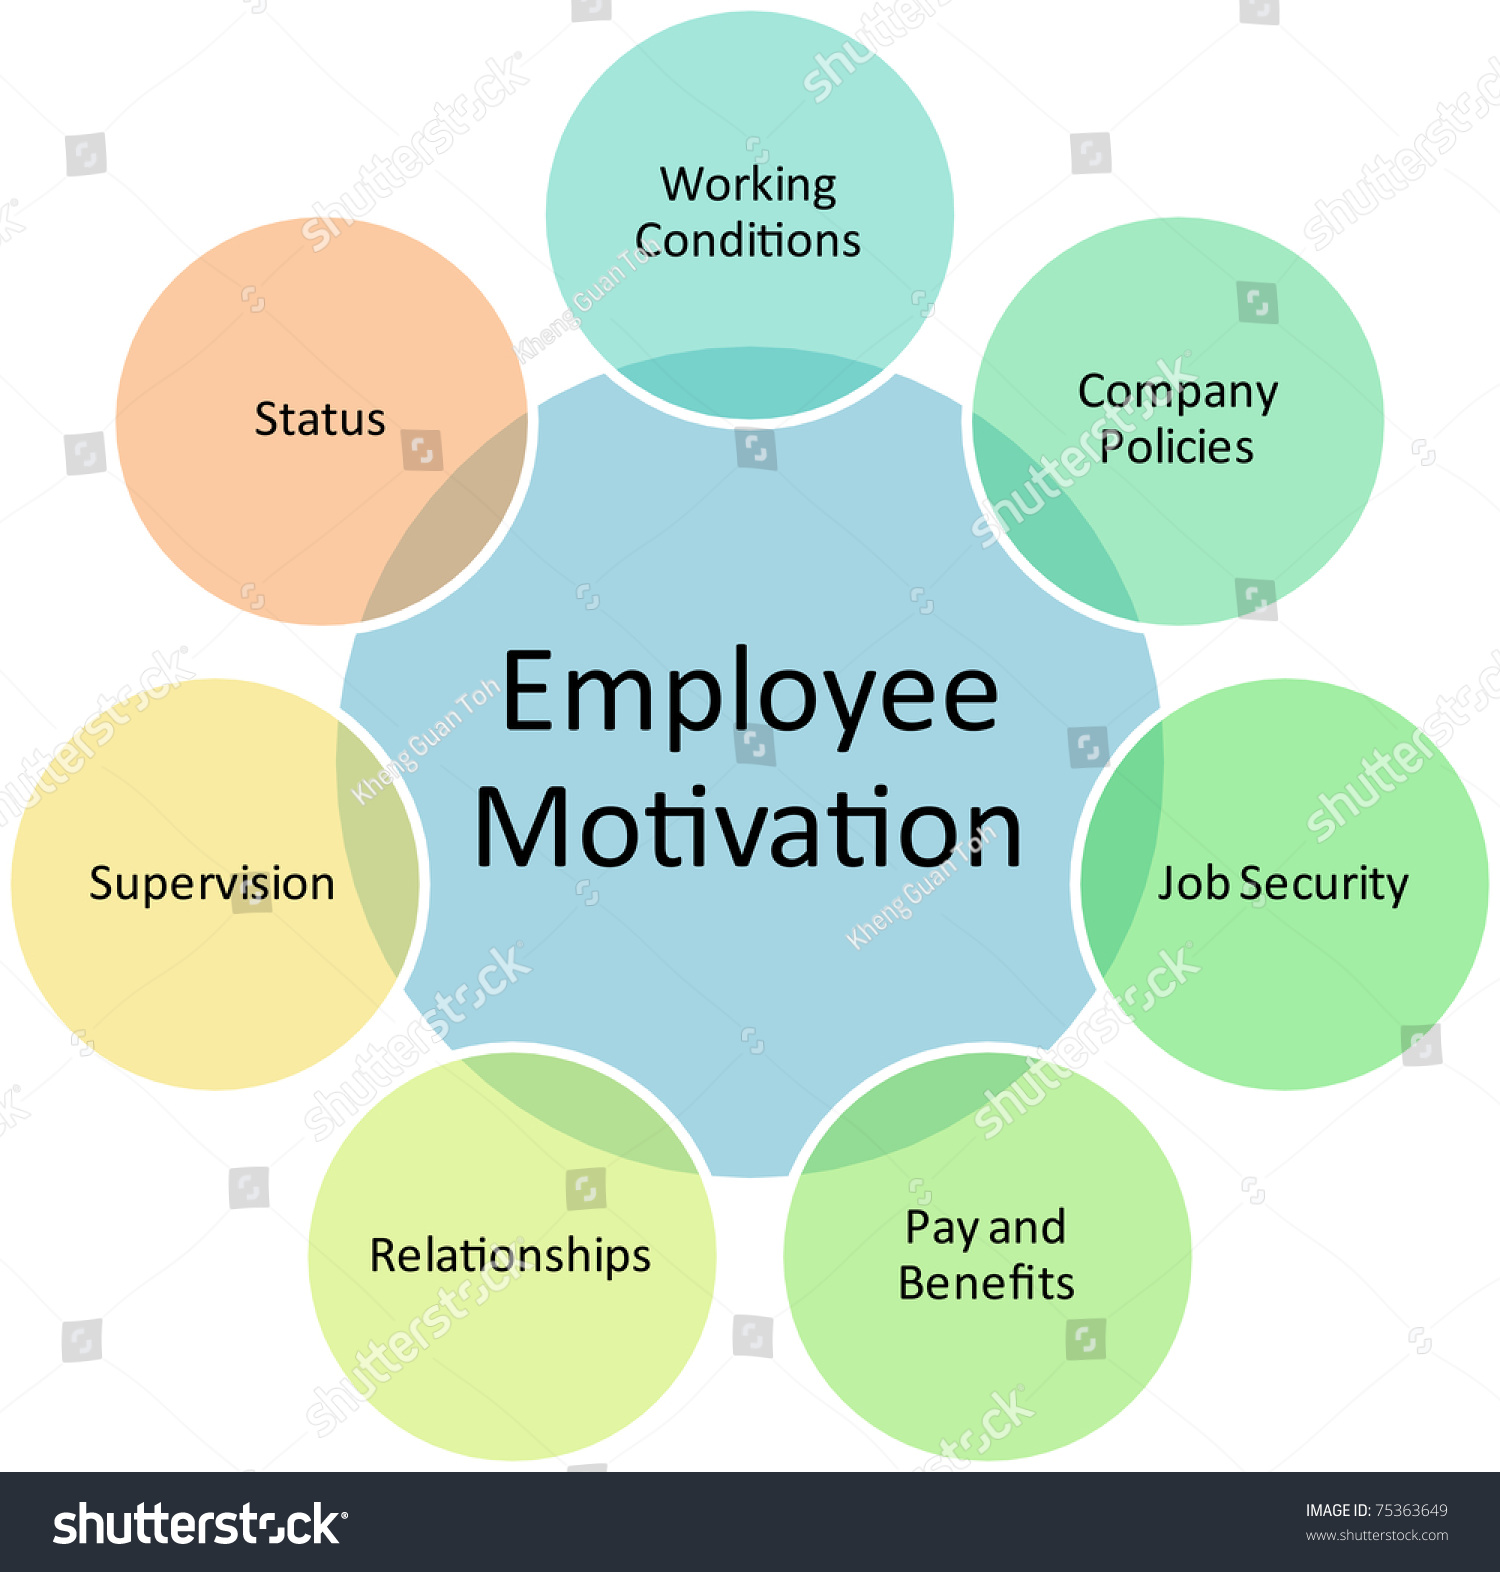 process theories motivate people in organisations The content and process theories of motivation provide human resource  people's needs and their  needs that motivate individuals, while the process.